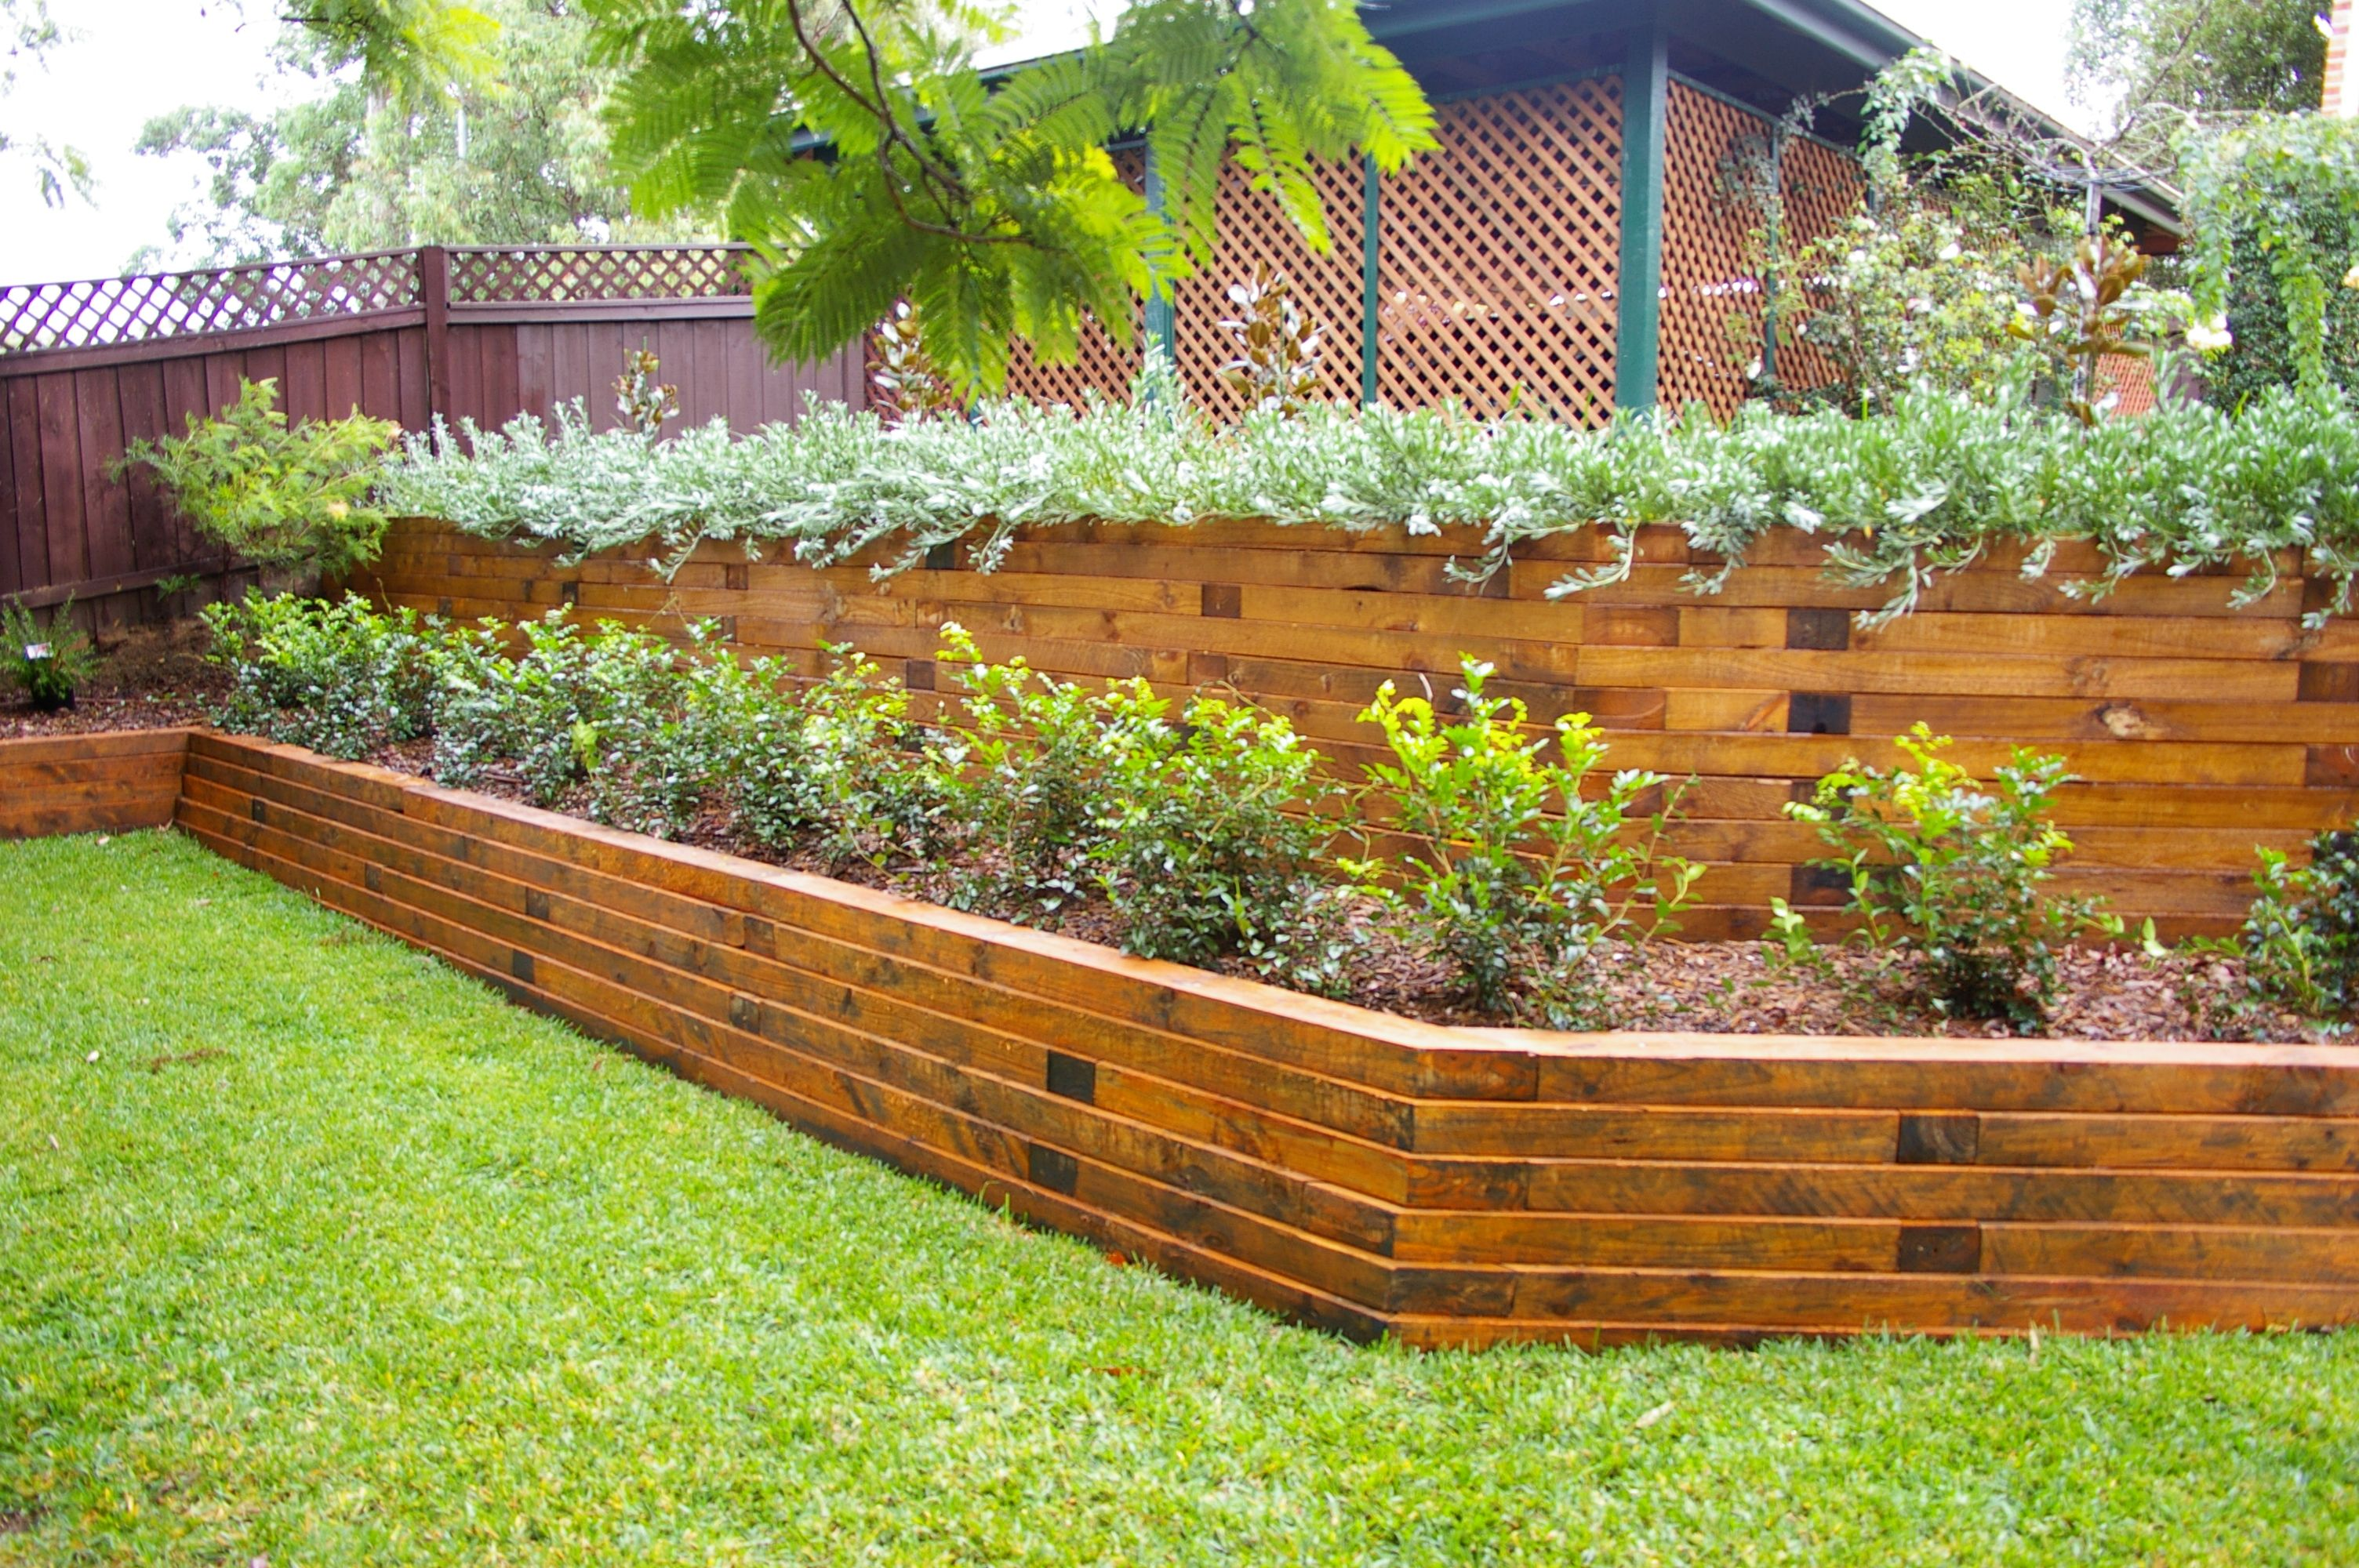 Timber Retaining Wall Designs image of landscape timber retaining wall system Vertical Landscape Timber Retaining Wall Popular Landscaping Astounding Landscape Timber Retaining Wall Design Vertical Landscape Timber